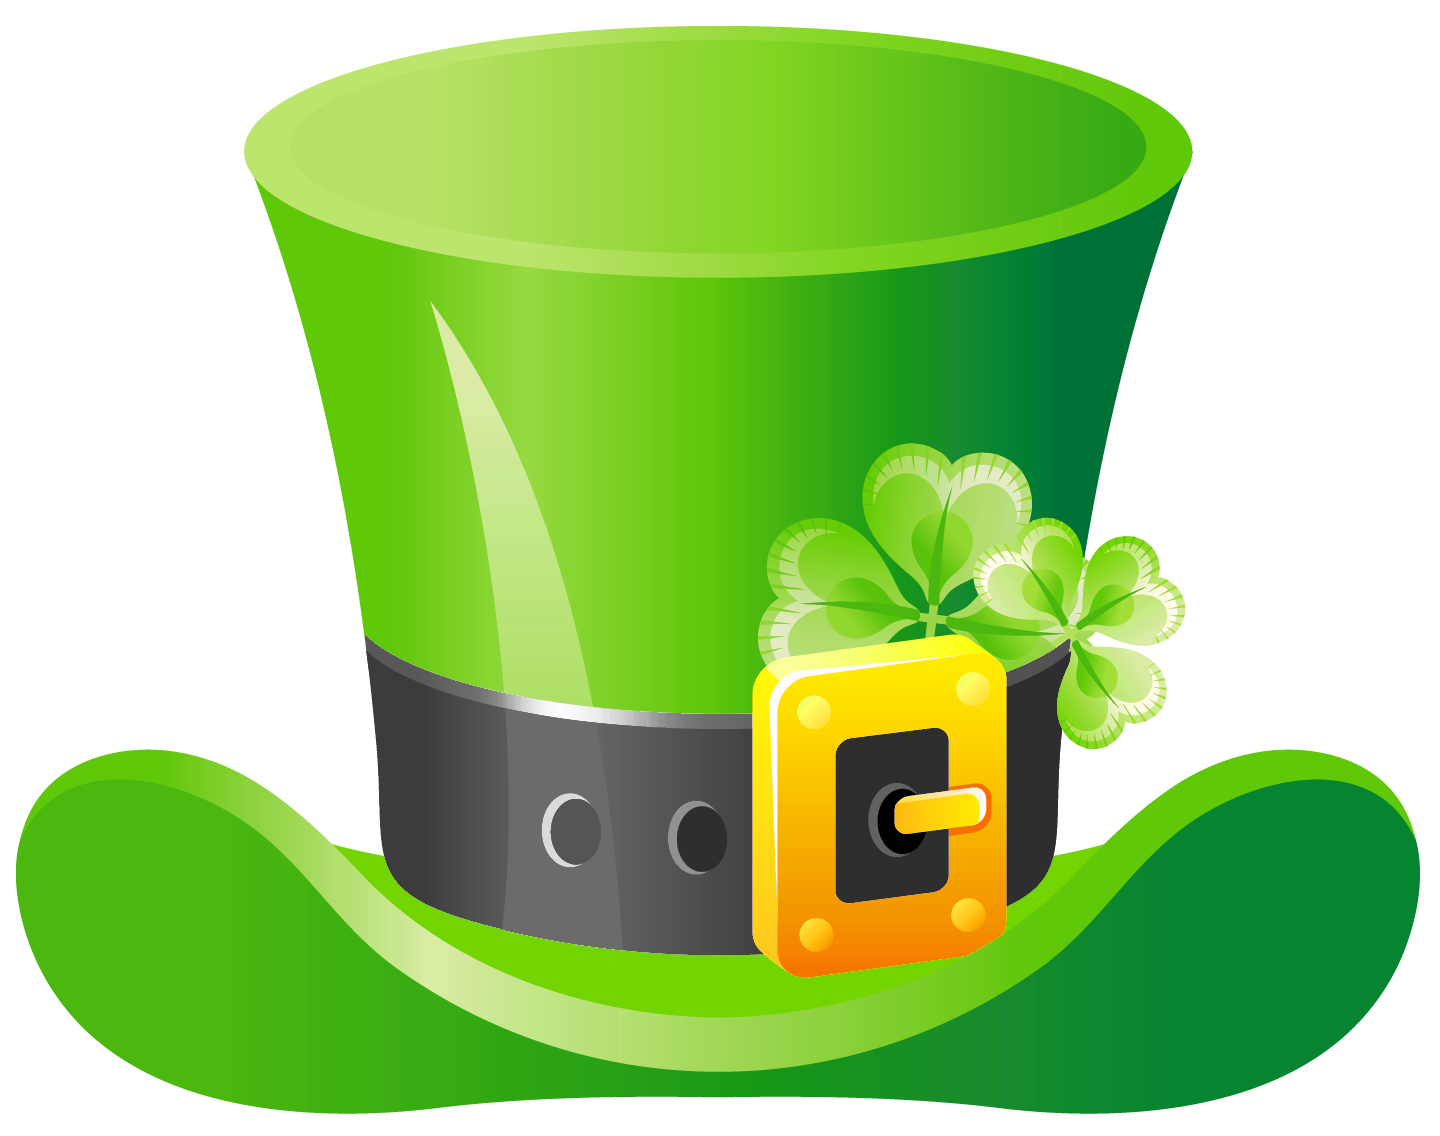 St patrick clipart. Hat png picture gallery